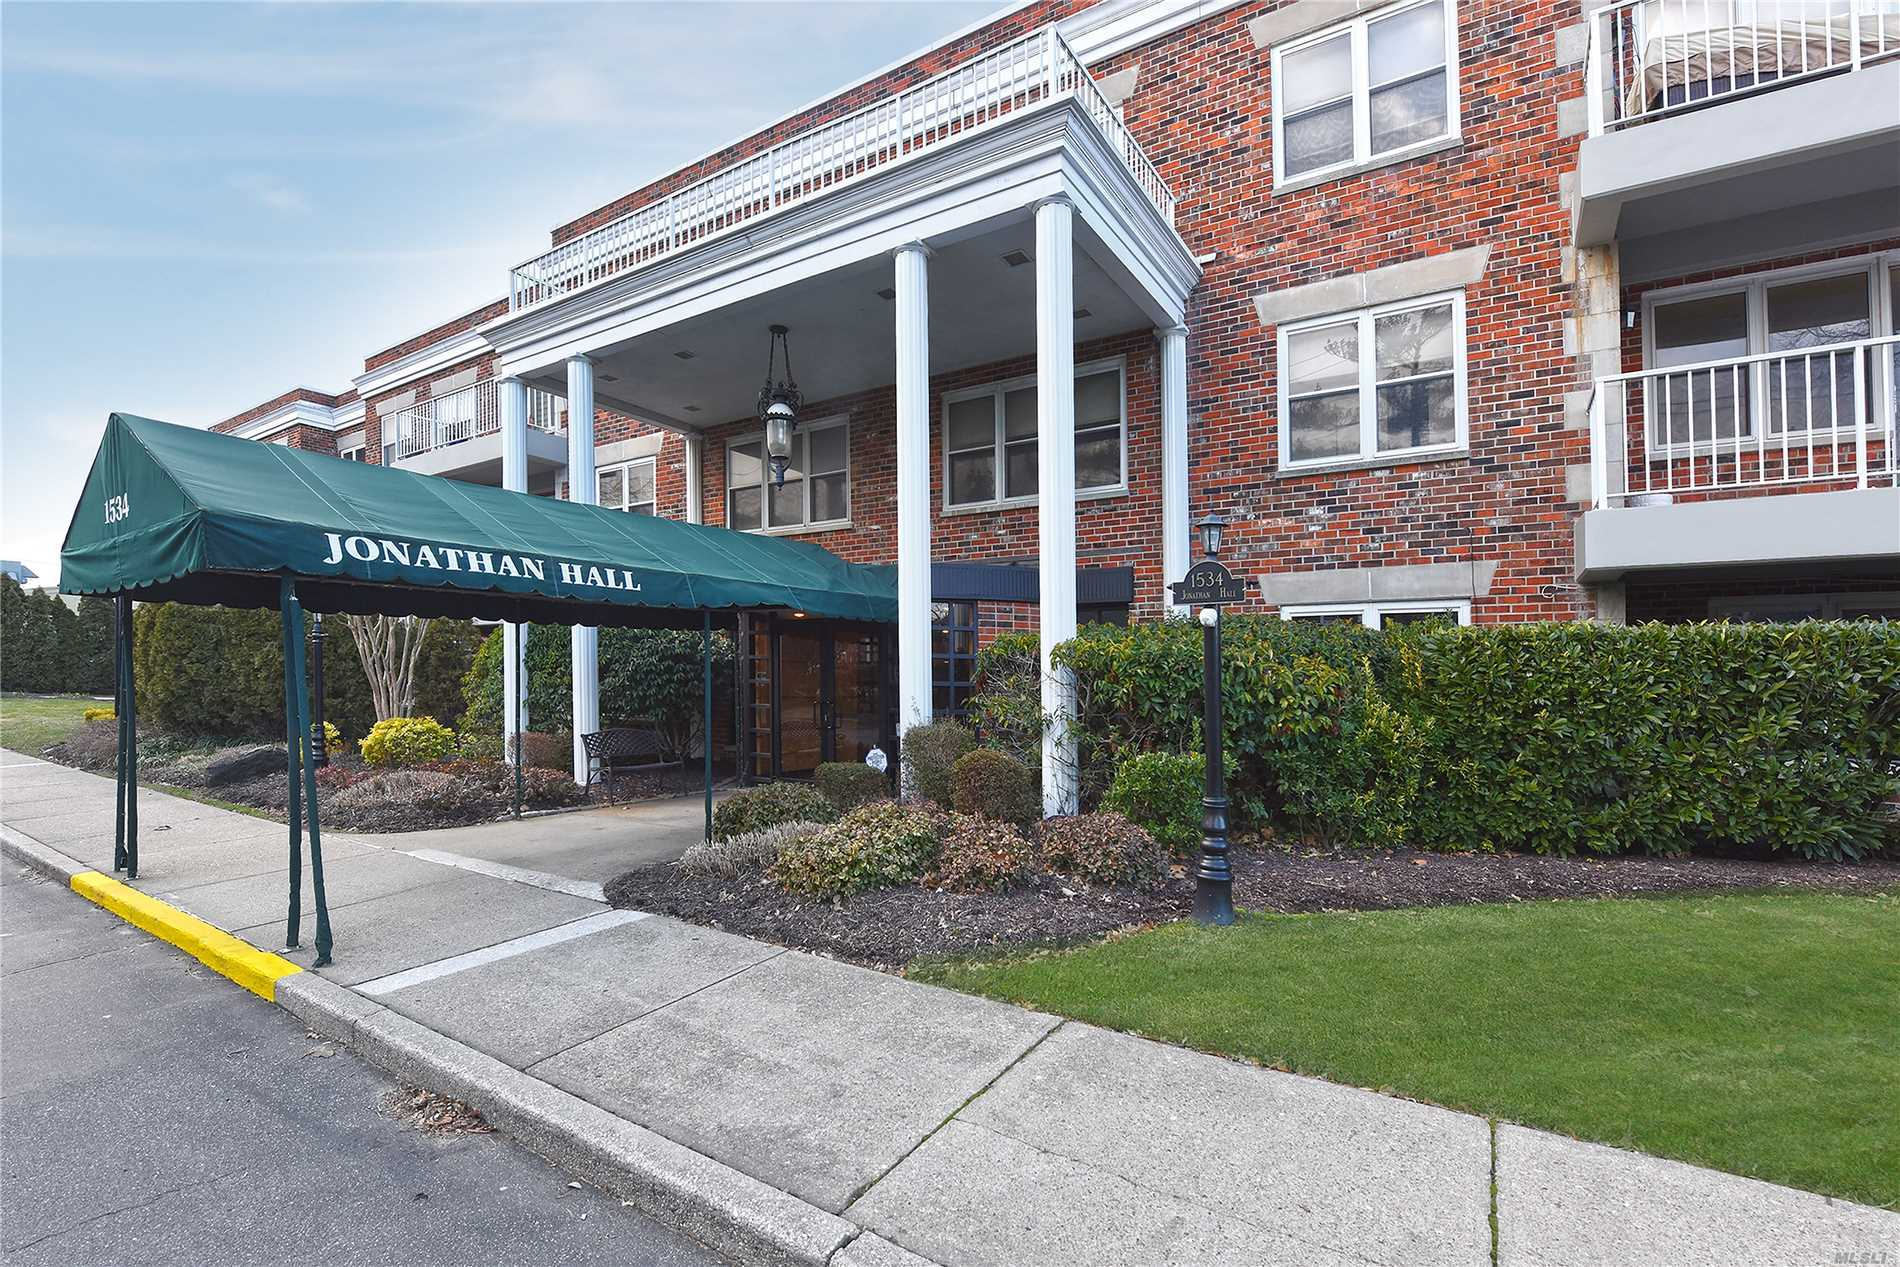 2 Br, 2 Bth Condo In Luxury Doorman Building With Elevator. Sunny Lr/Dr W/ New Walk Out Terrace, Eik, Br/Den & Huge Master Suite W/Bath & Large Walk In Closets. Laundry Directly Across Hall. Indoor Pkg Spot Included. Handicap Accessible Thru Garage. Private Storage Space Incl.